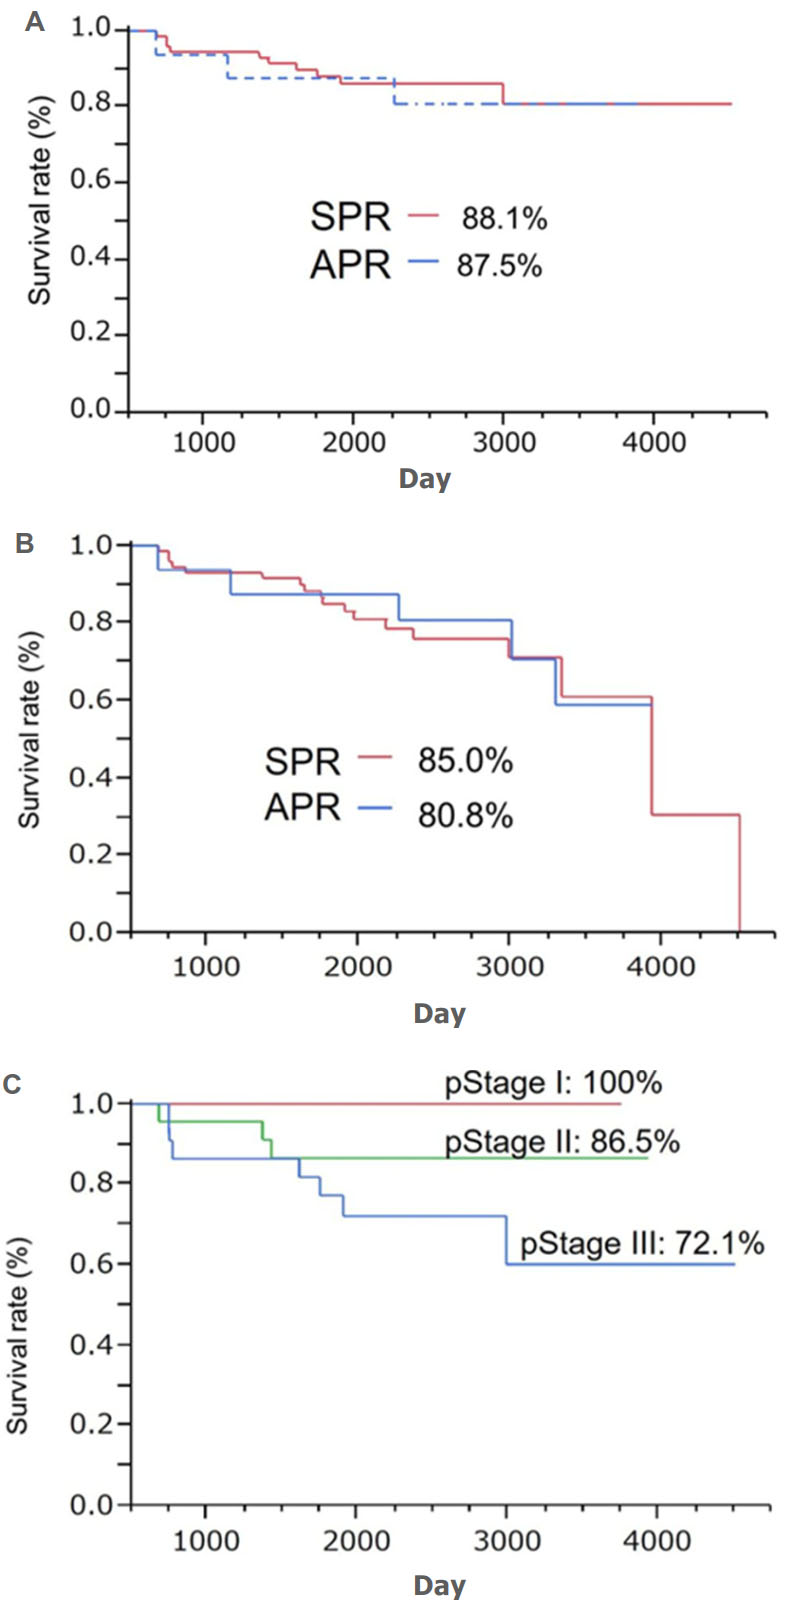 hight resolution of kaplan meier survival rate in the sphincter preserving resection and abdominoperineal resection groups a overall survival rate b disease free survival